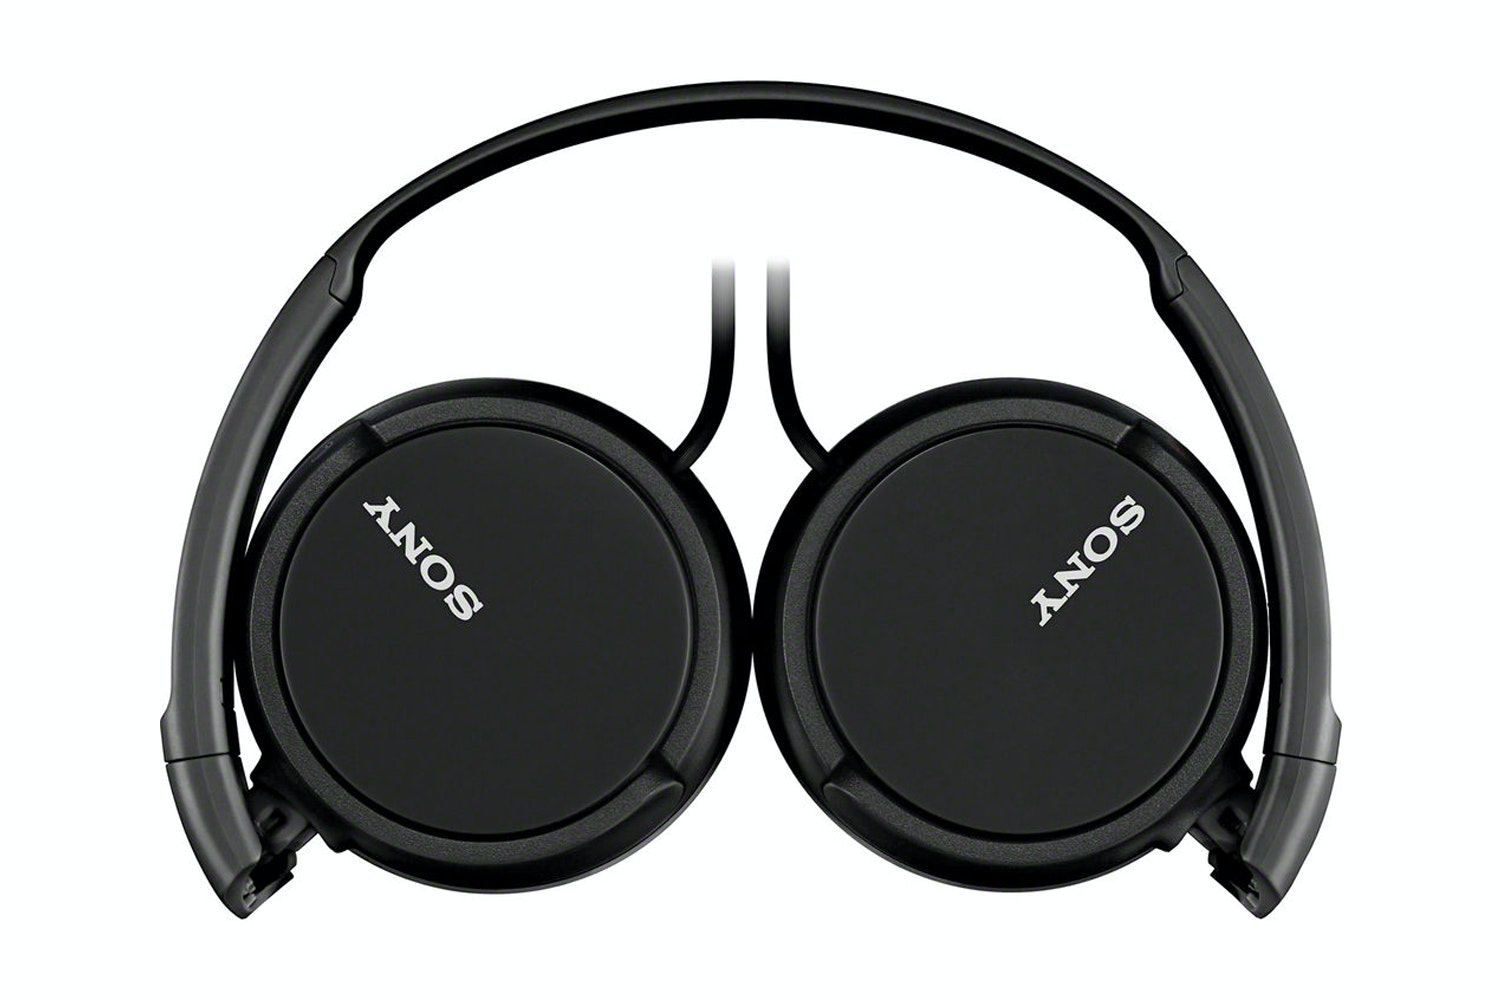 Sony Headphones | MDRZX110B.AE